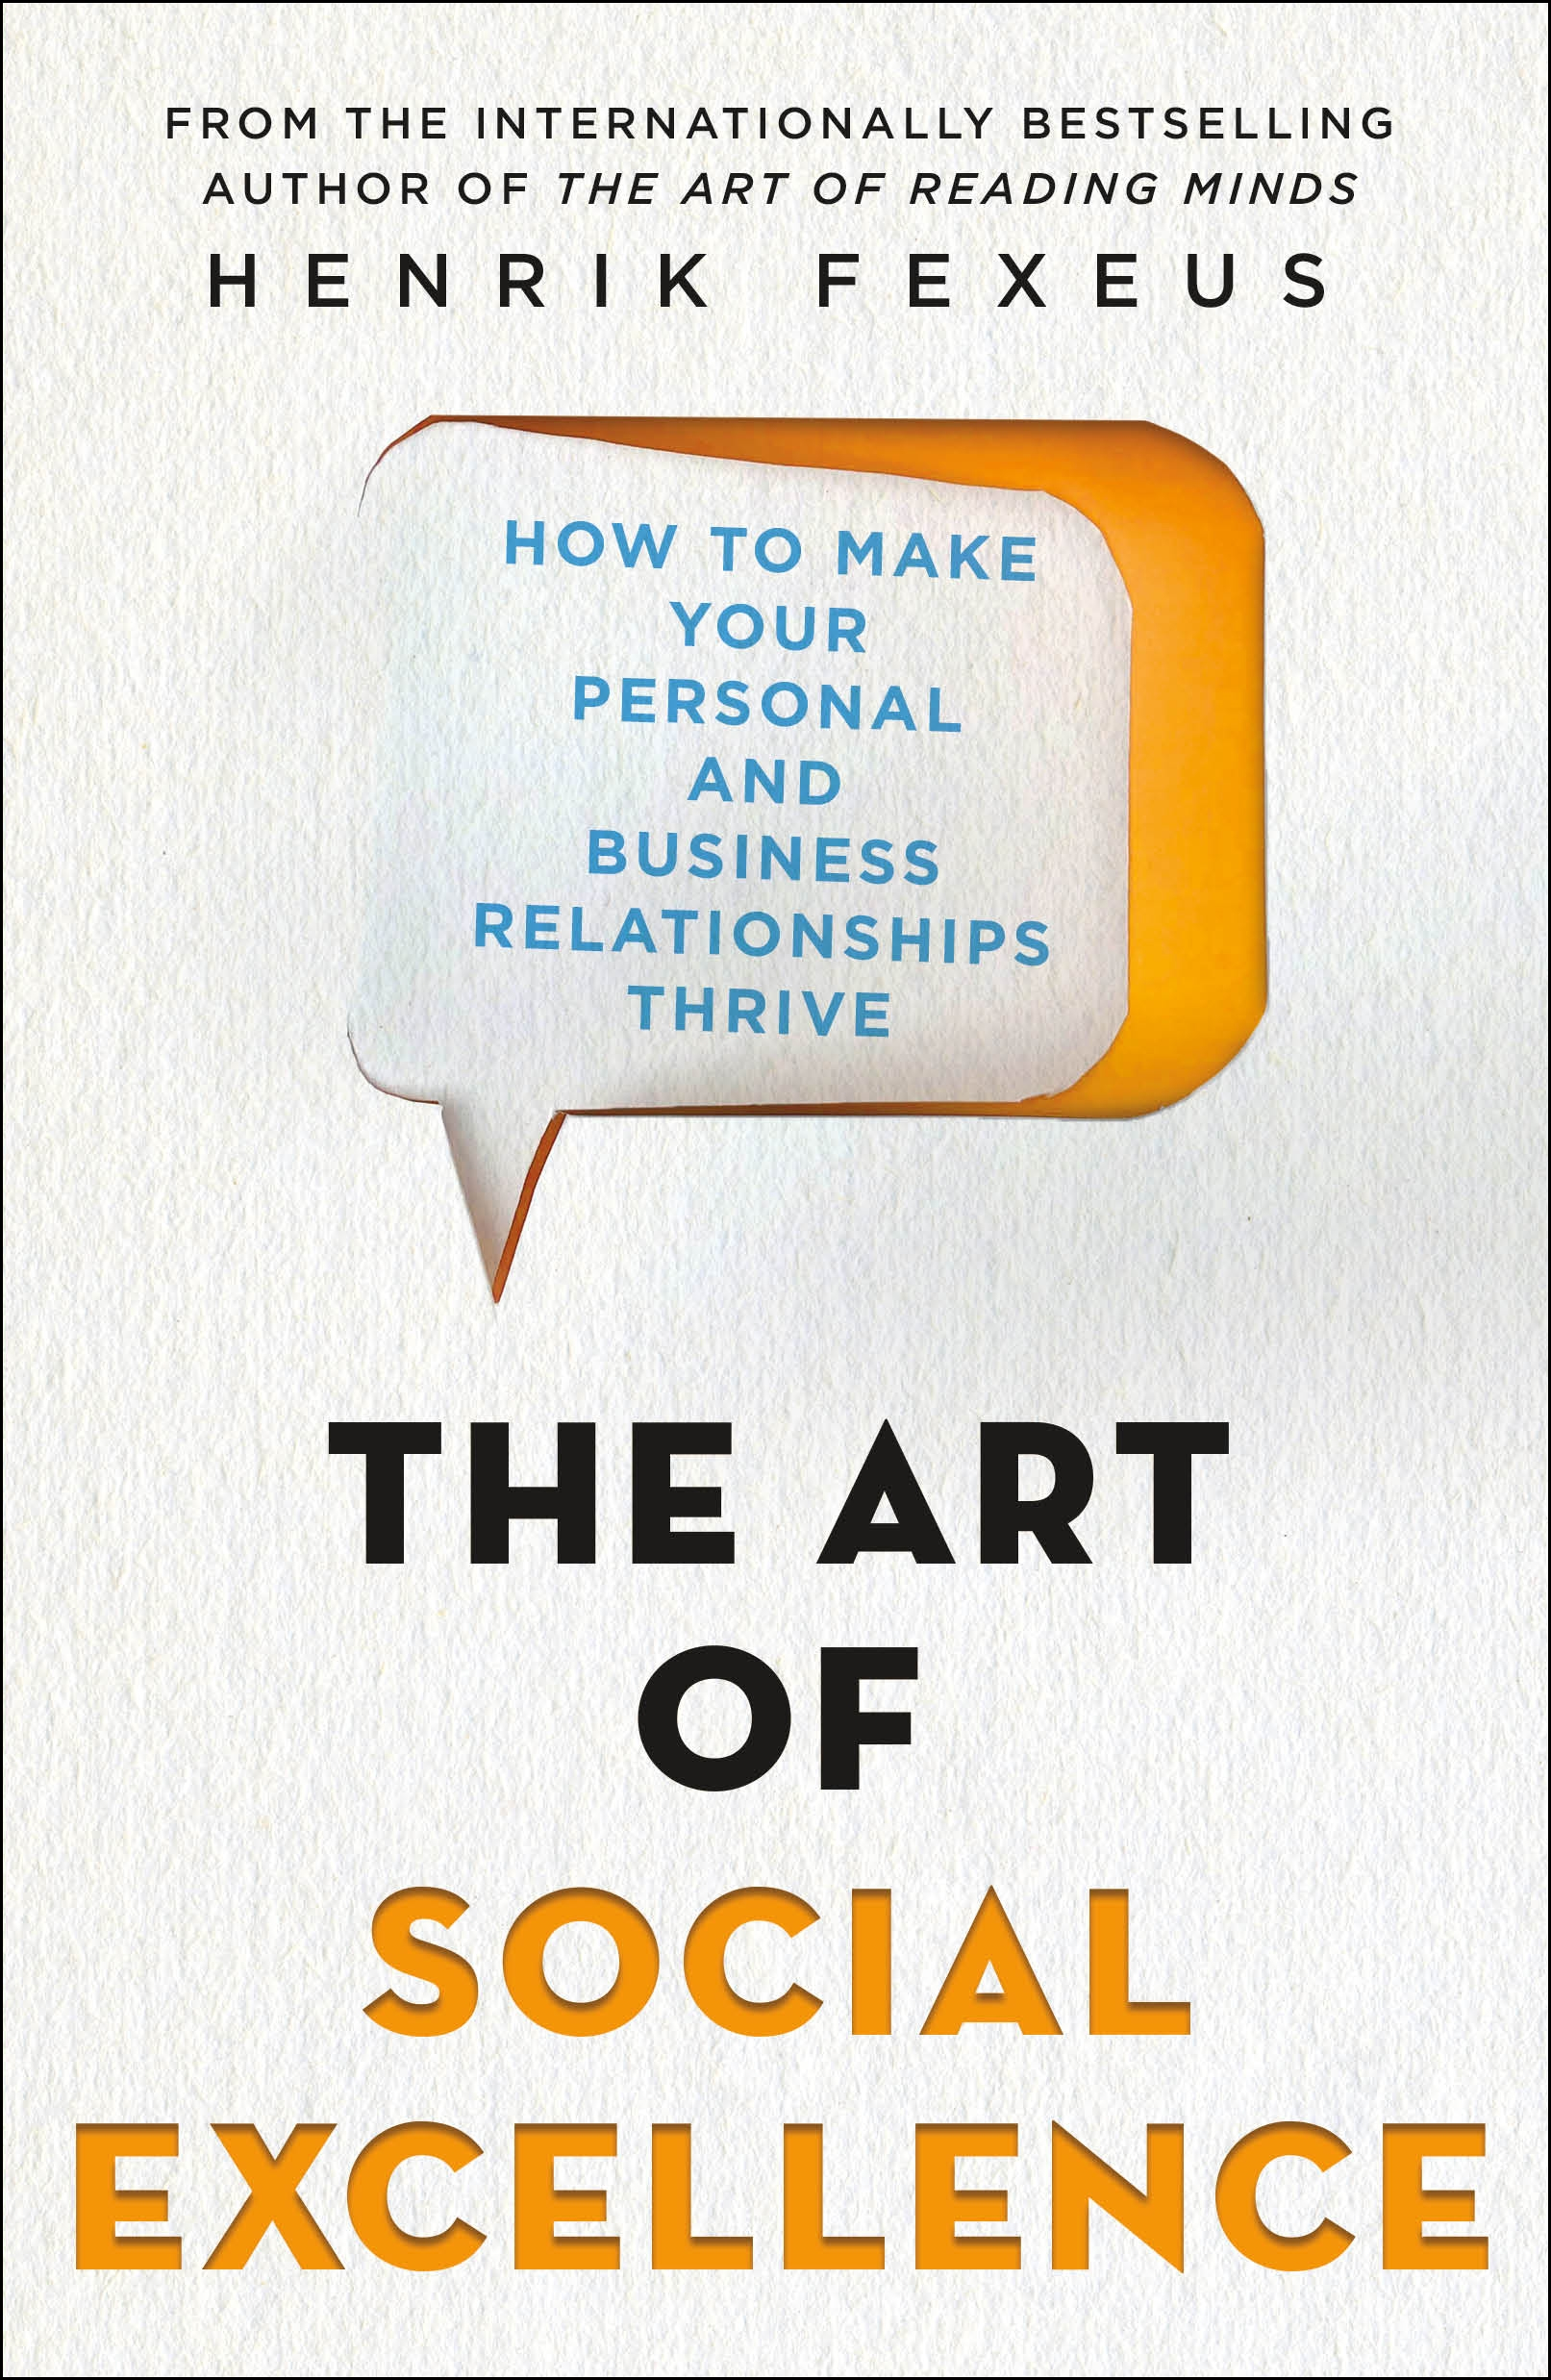 The Art of Social Excellence How to Make Your Personal and Business Relationships Thrive